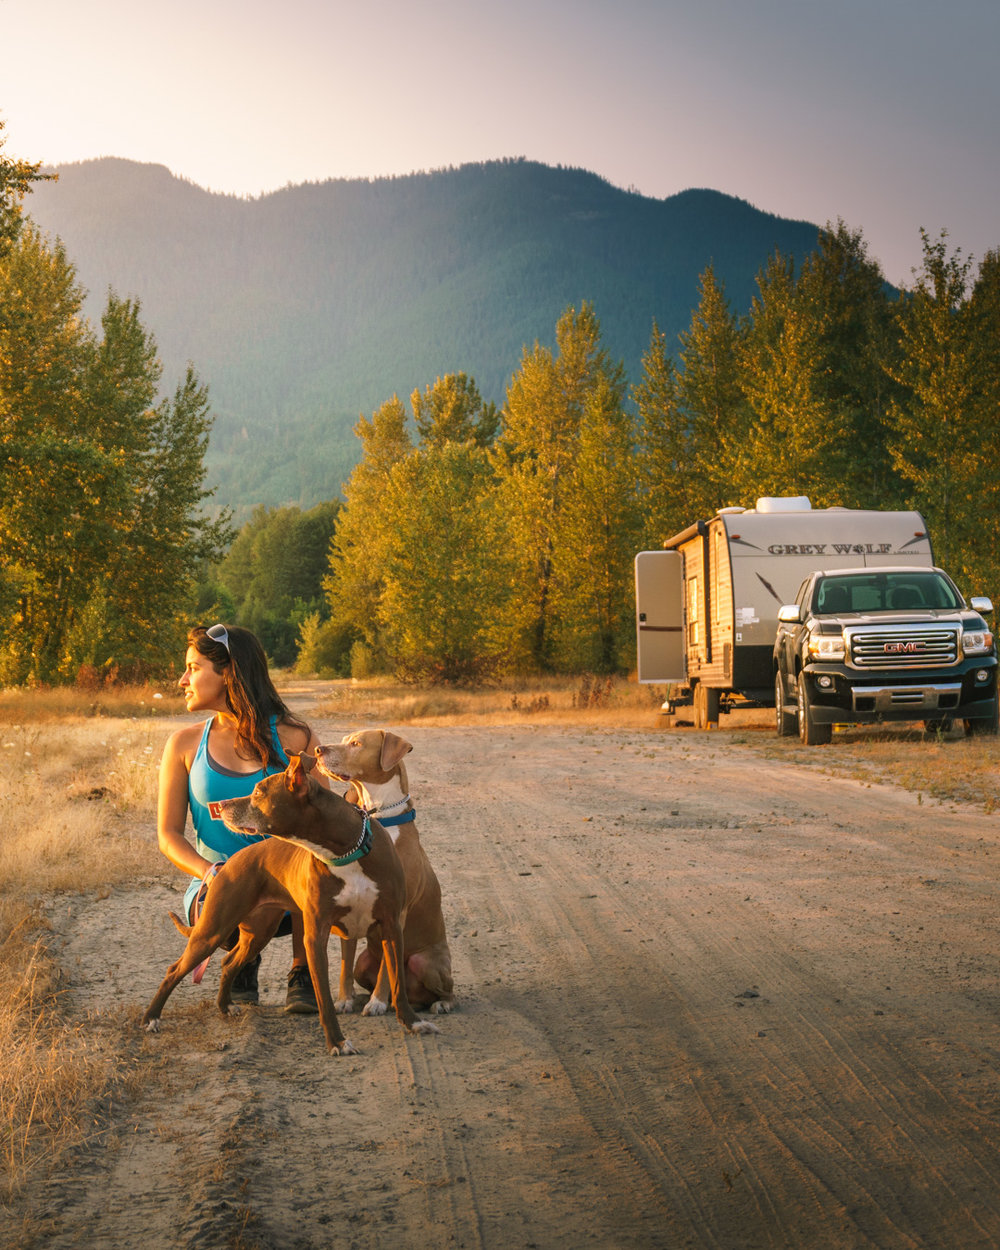 We had some amazing adventures in our Grey Wolf Travel Trailer. It did great on dusty, dirt roads.